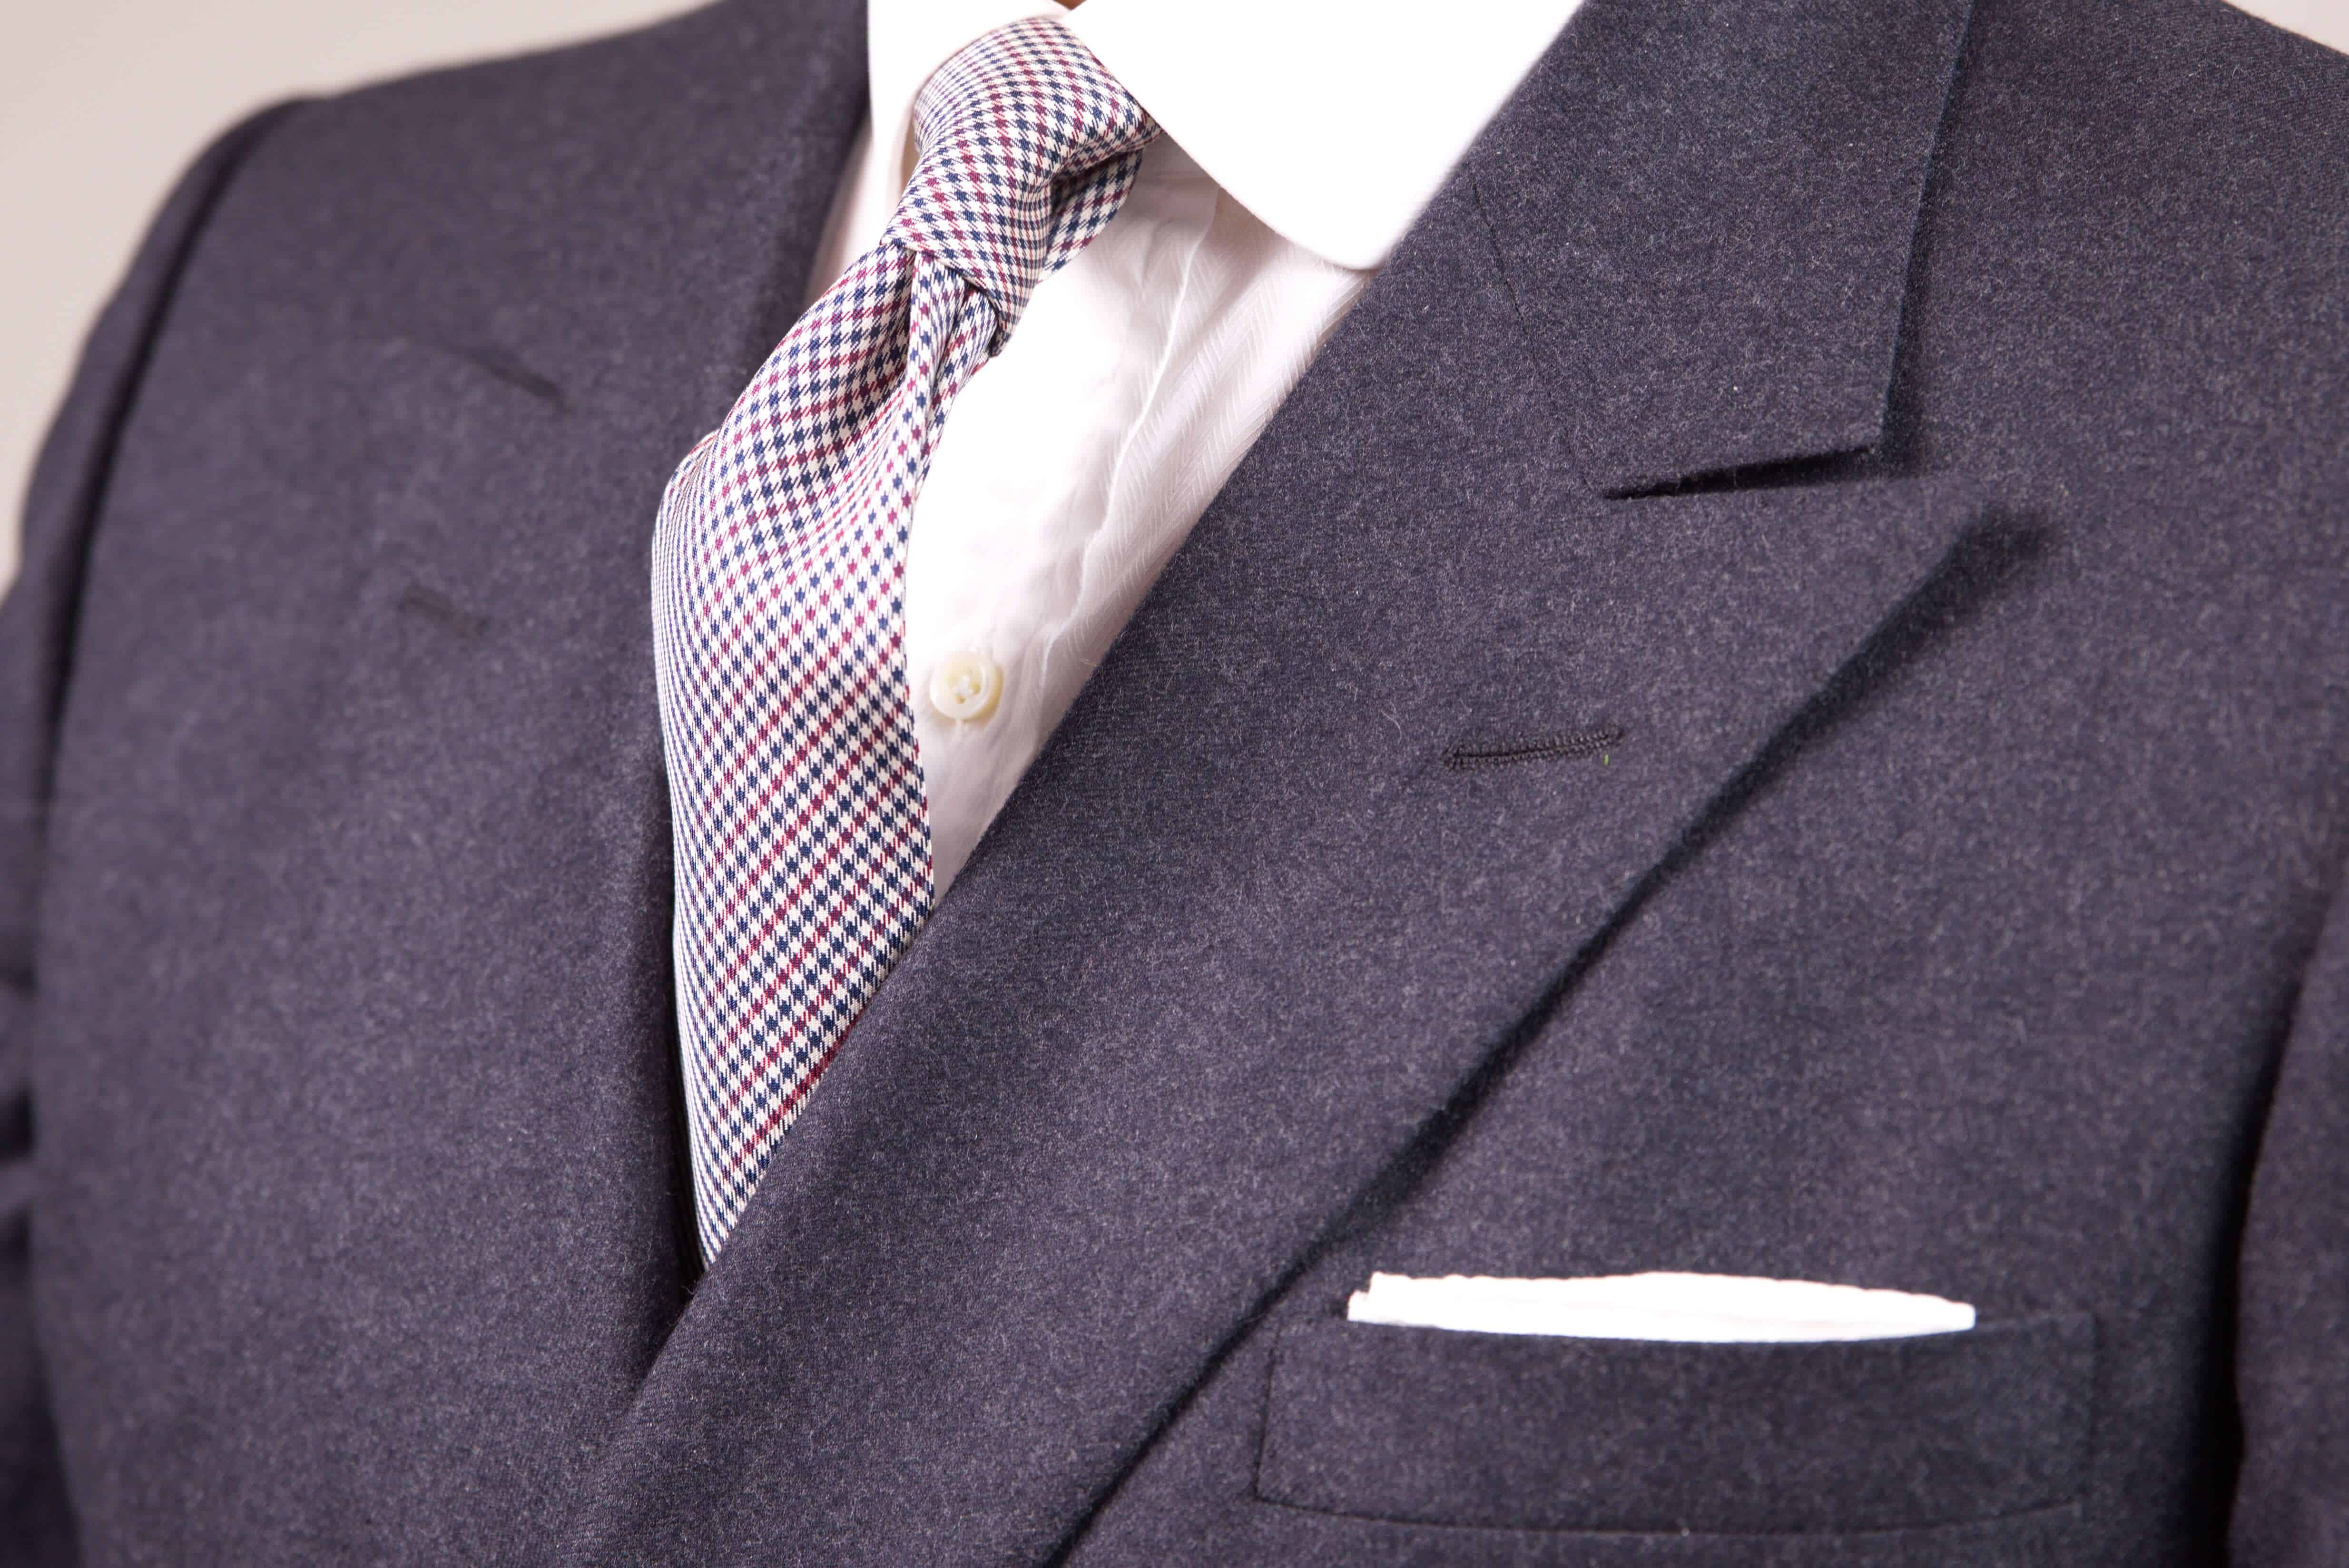 How To Combine a Pocket Square with a Tie, Suit \u0026 Shirt